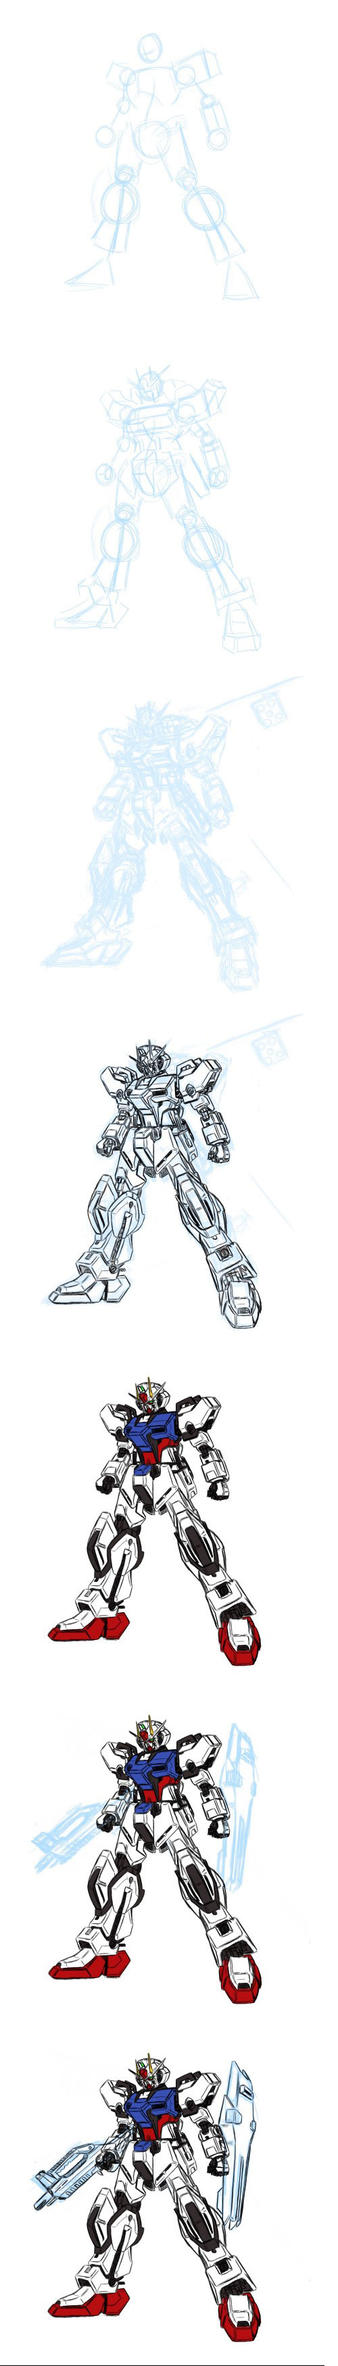 Drawing a side profile Mecha by V2Buster